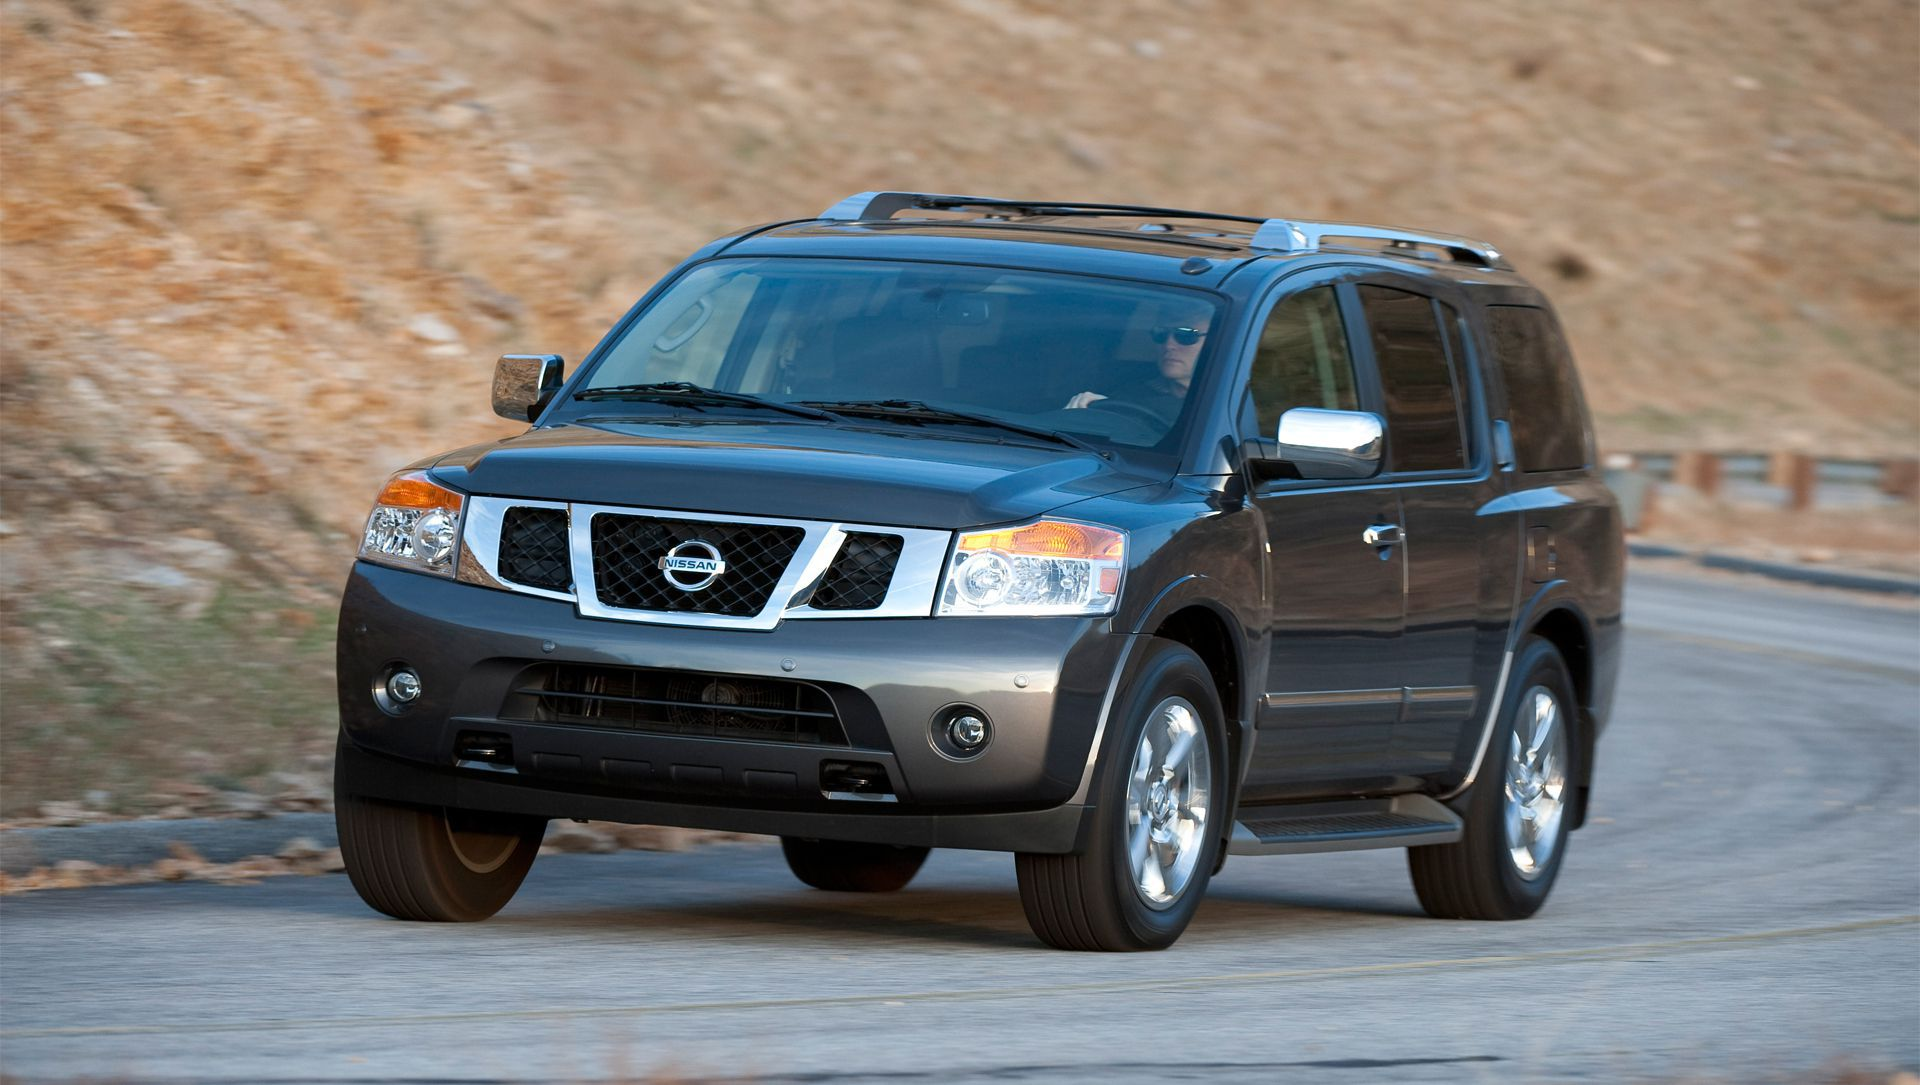 Nissan announces US Pricing for 2014 Armada Full Size SUV and Titan